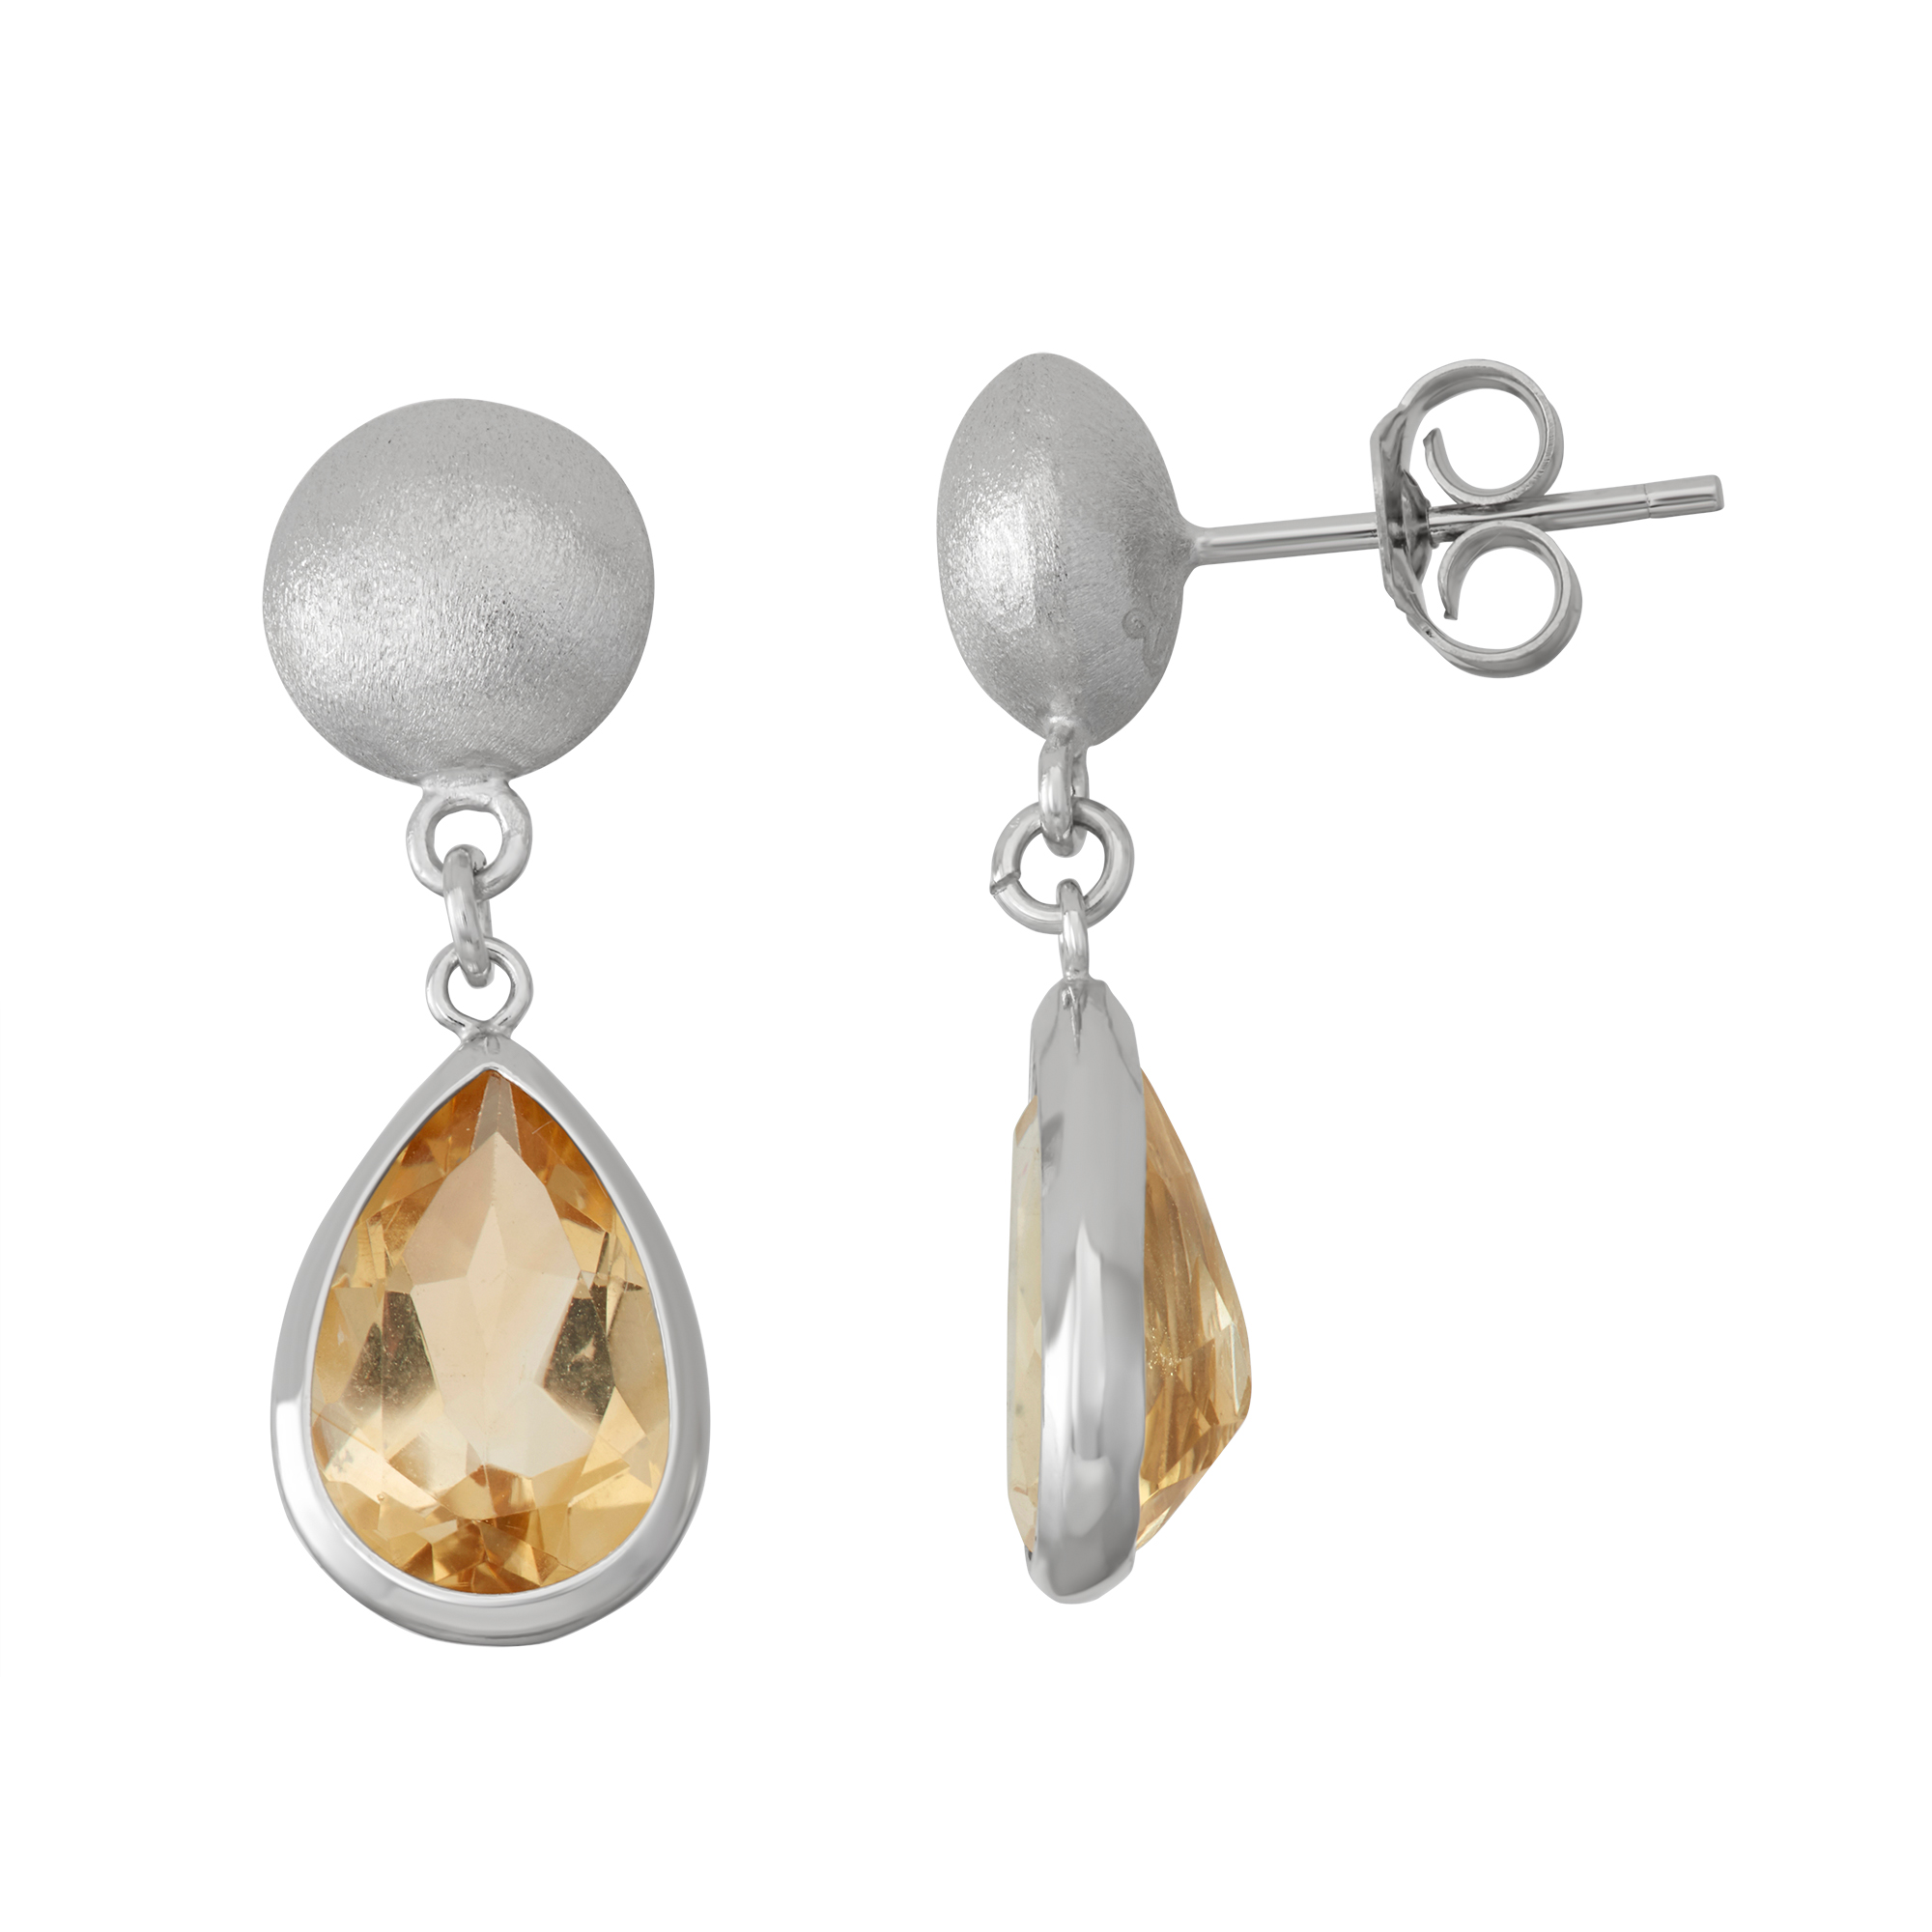 Silver Bead and Bezel Teardrop drop Earring with Gemstone by Collection Bijoux